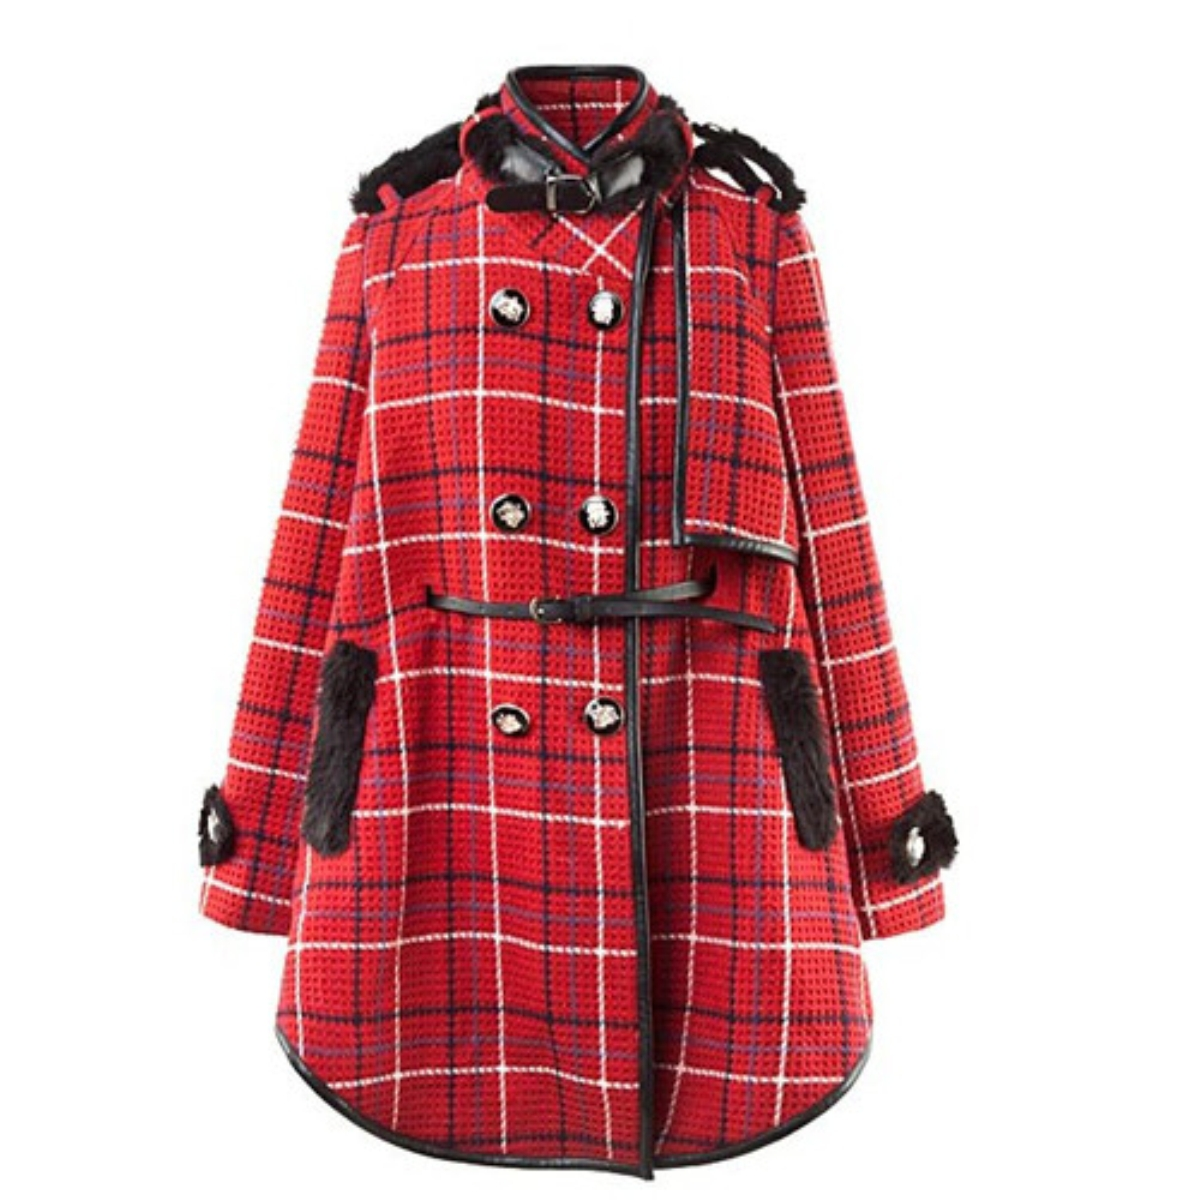 Stand Collar Plaid Double-Breasted Woolen Coat,Cheap in Wendybox.com